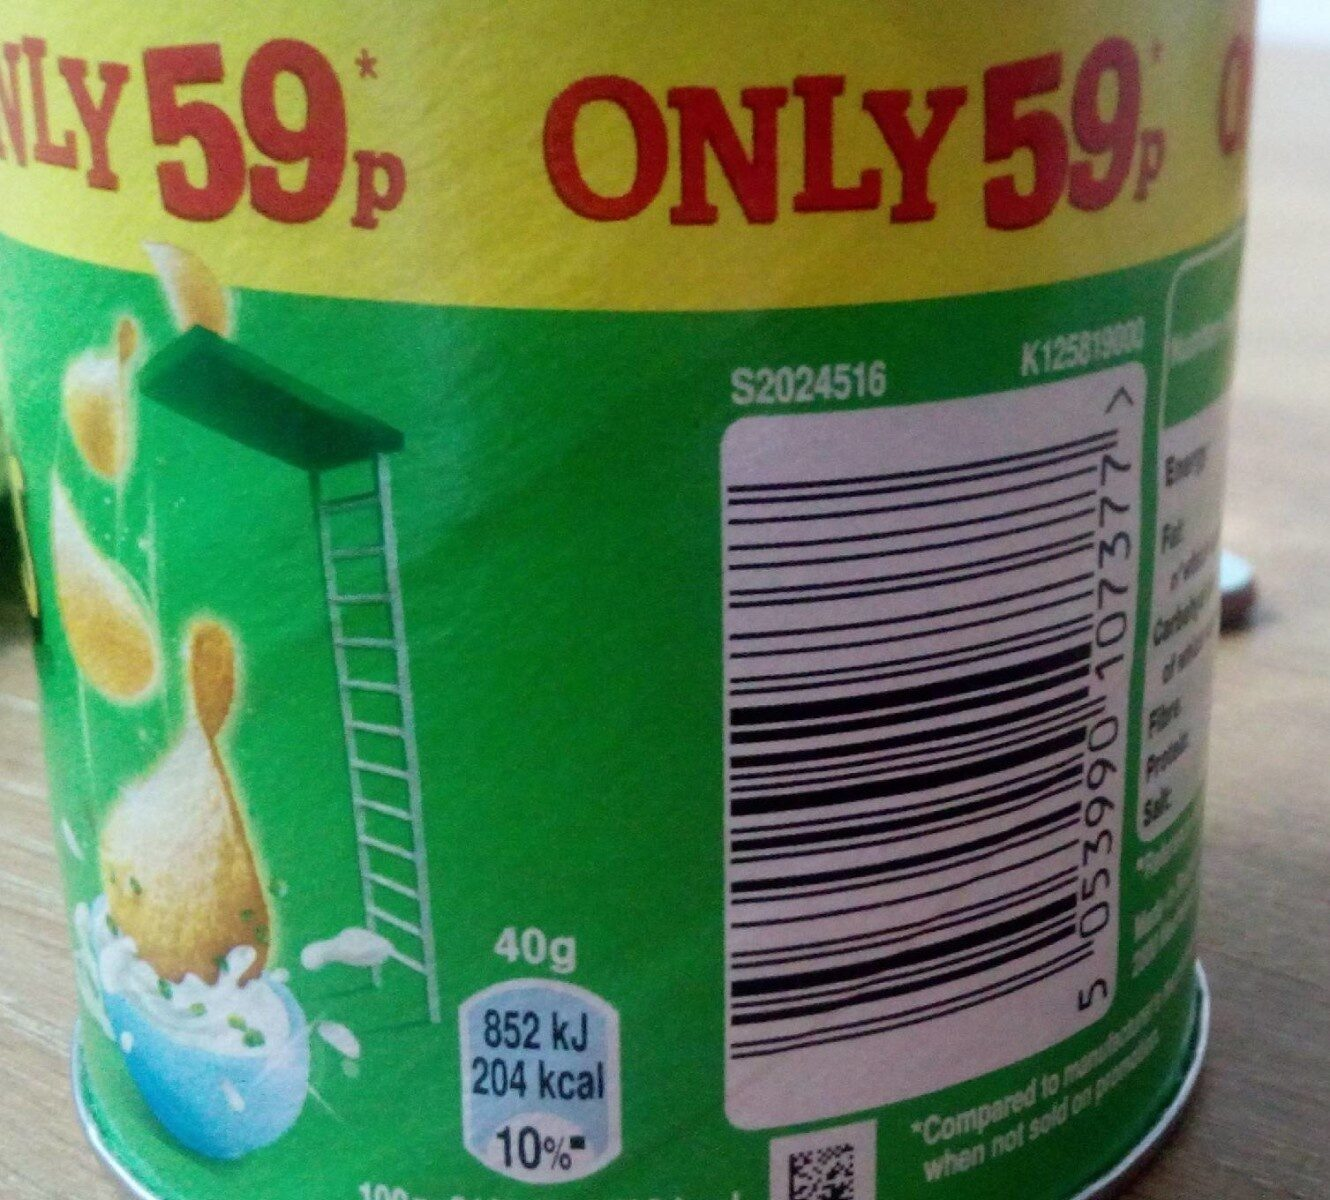 Pringles sour cream & onion - Product